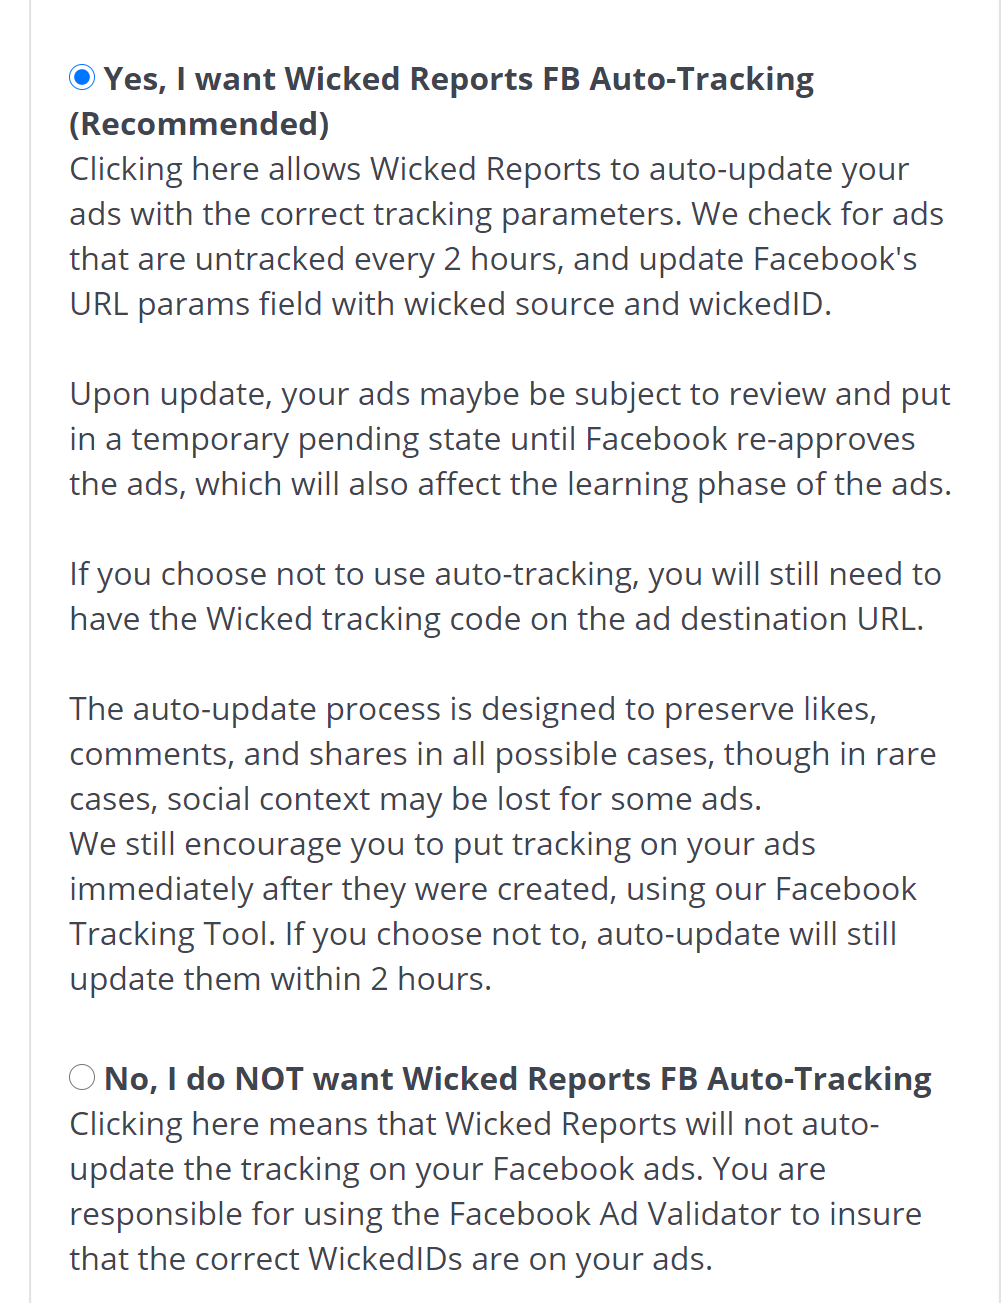 wicked reports fb auto tracking